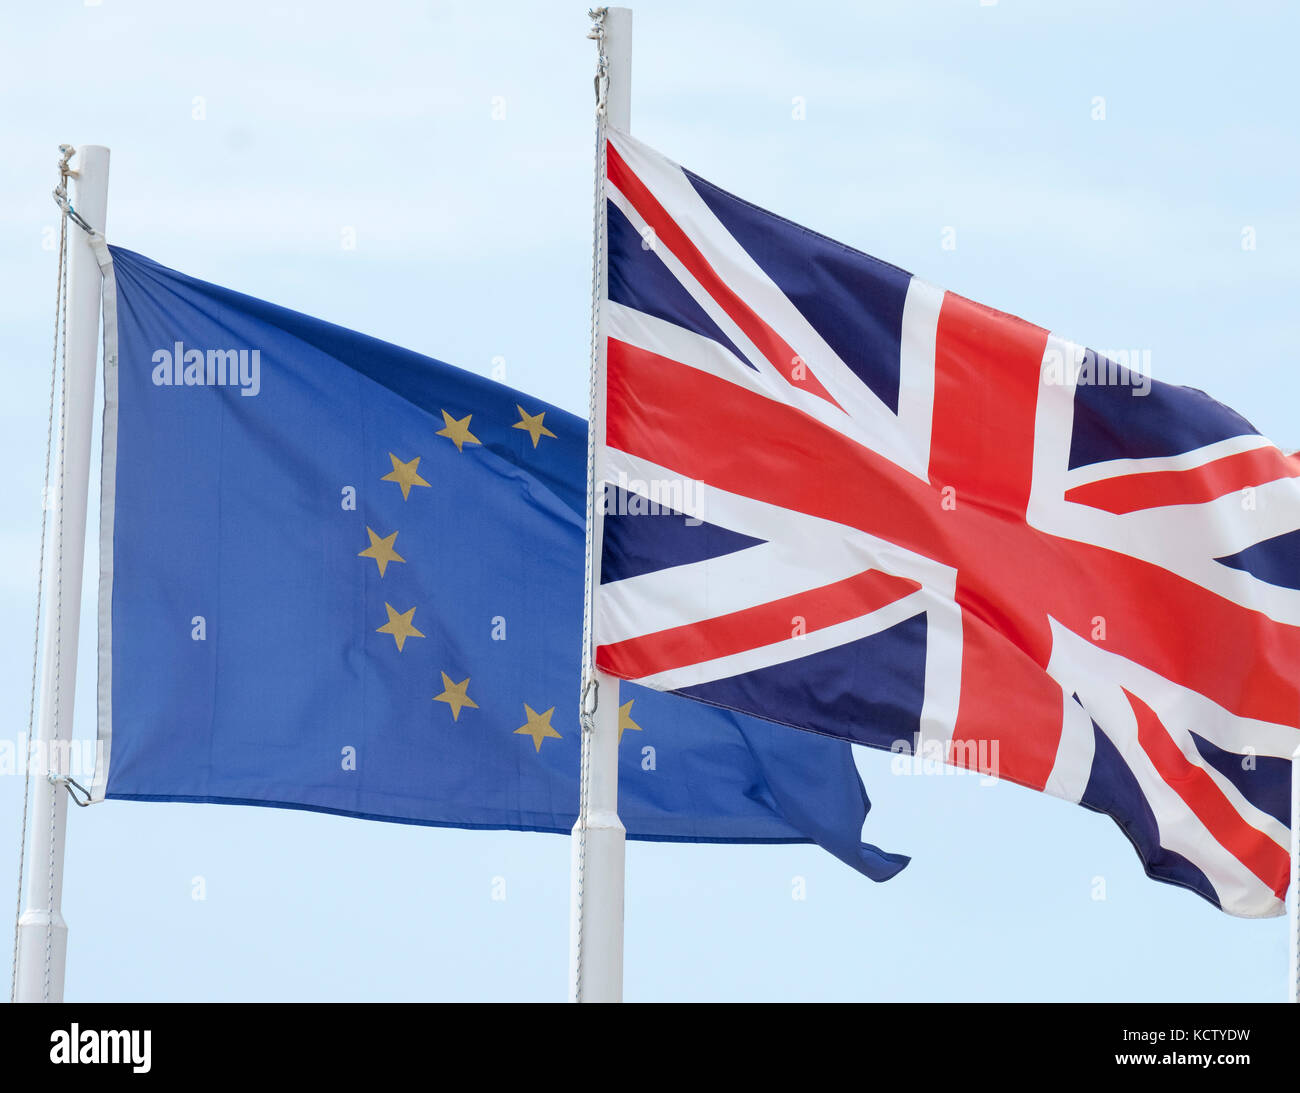 The European Union and British (Union Jack)  flags fly side by side in Cyprus. Stock Photo